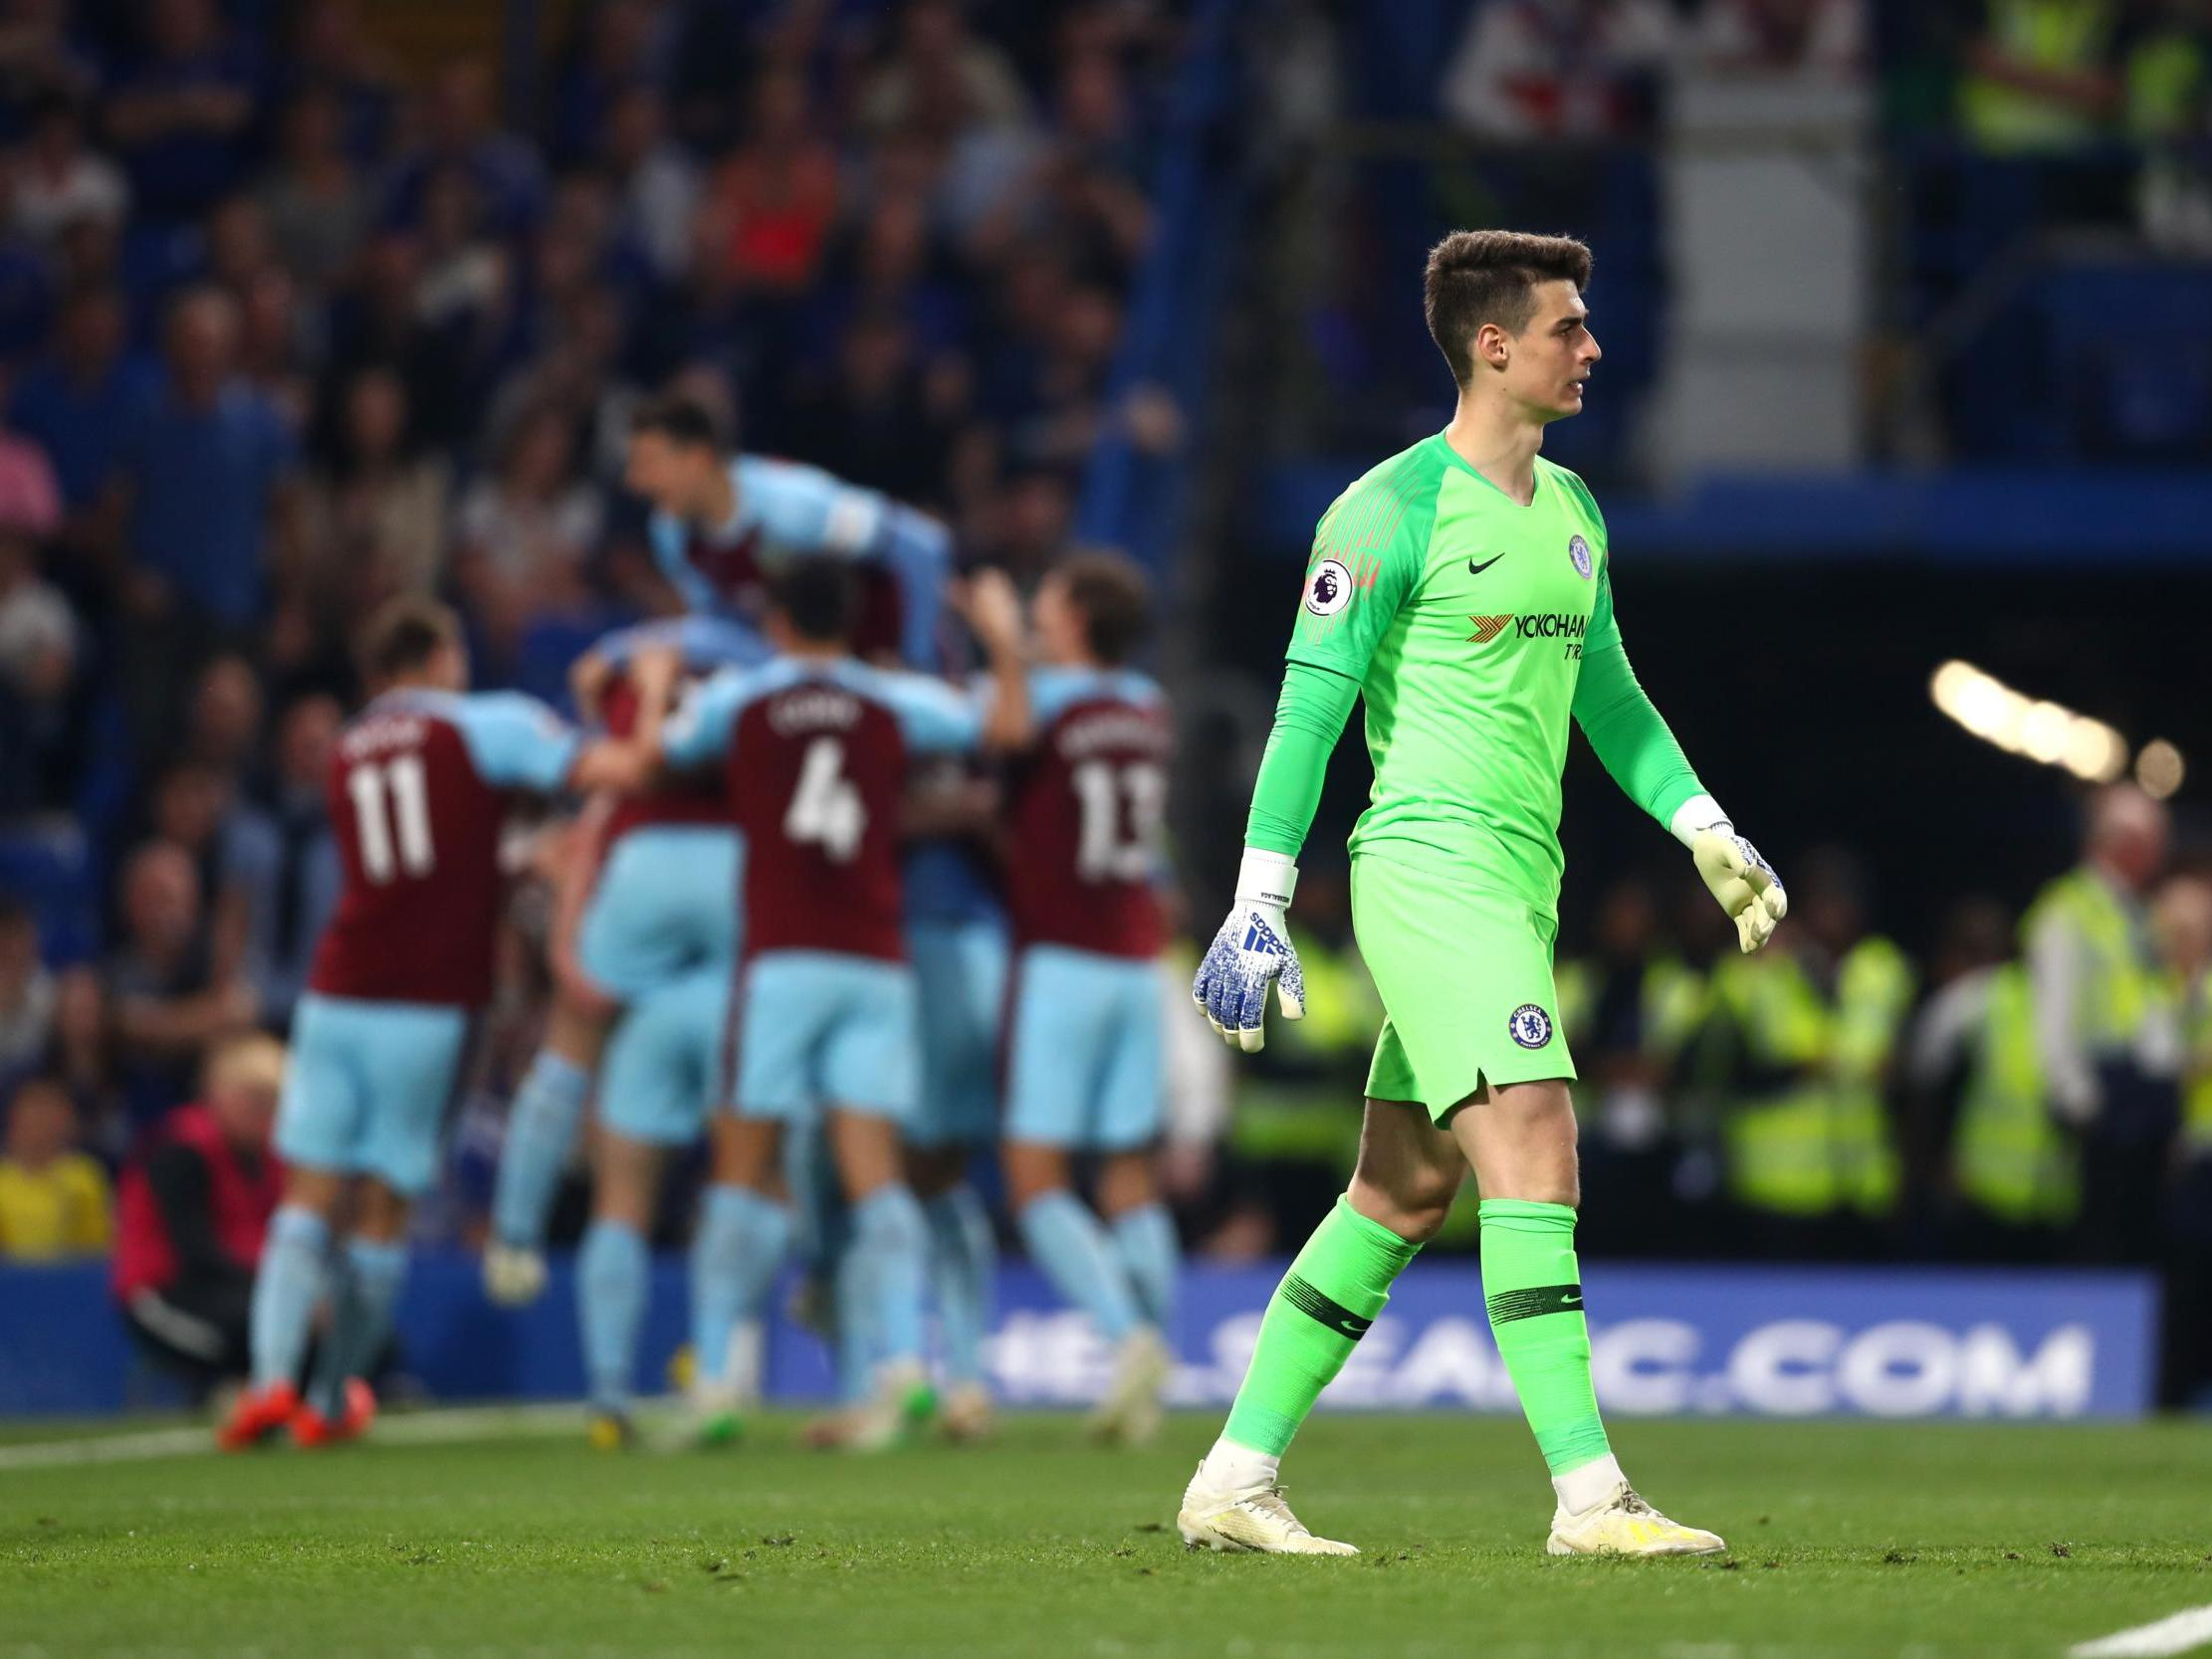 Burnley stand firm to share the spoils as Chelsea blow chance to move into third